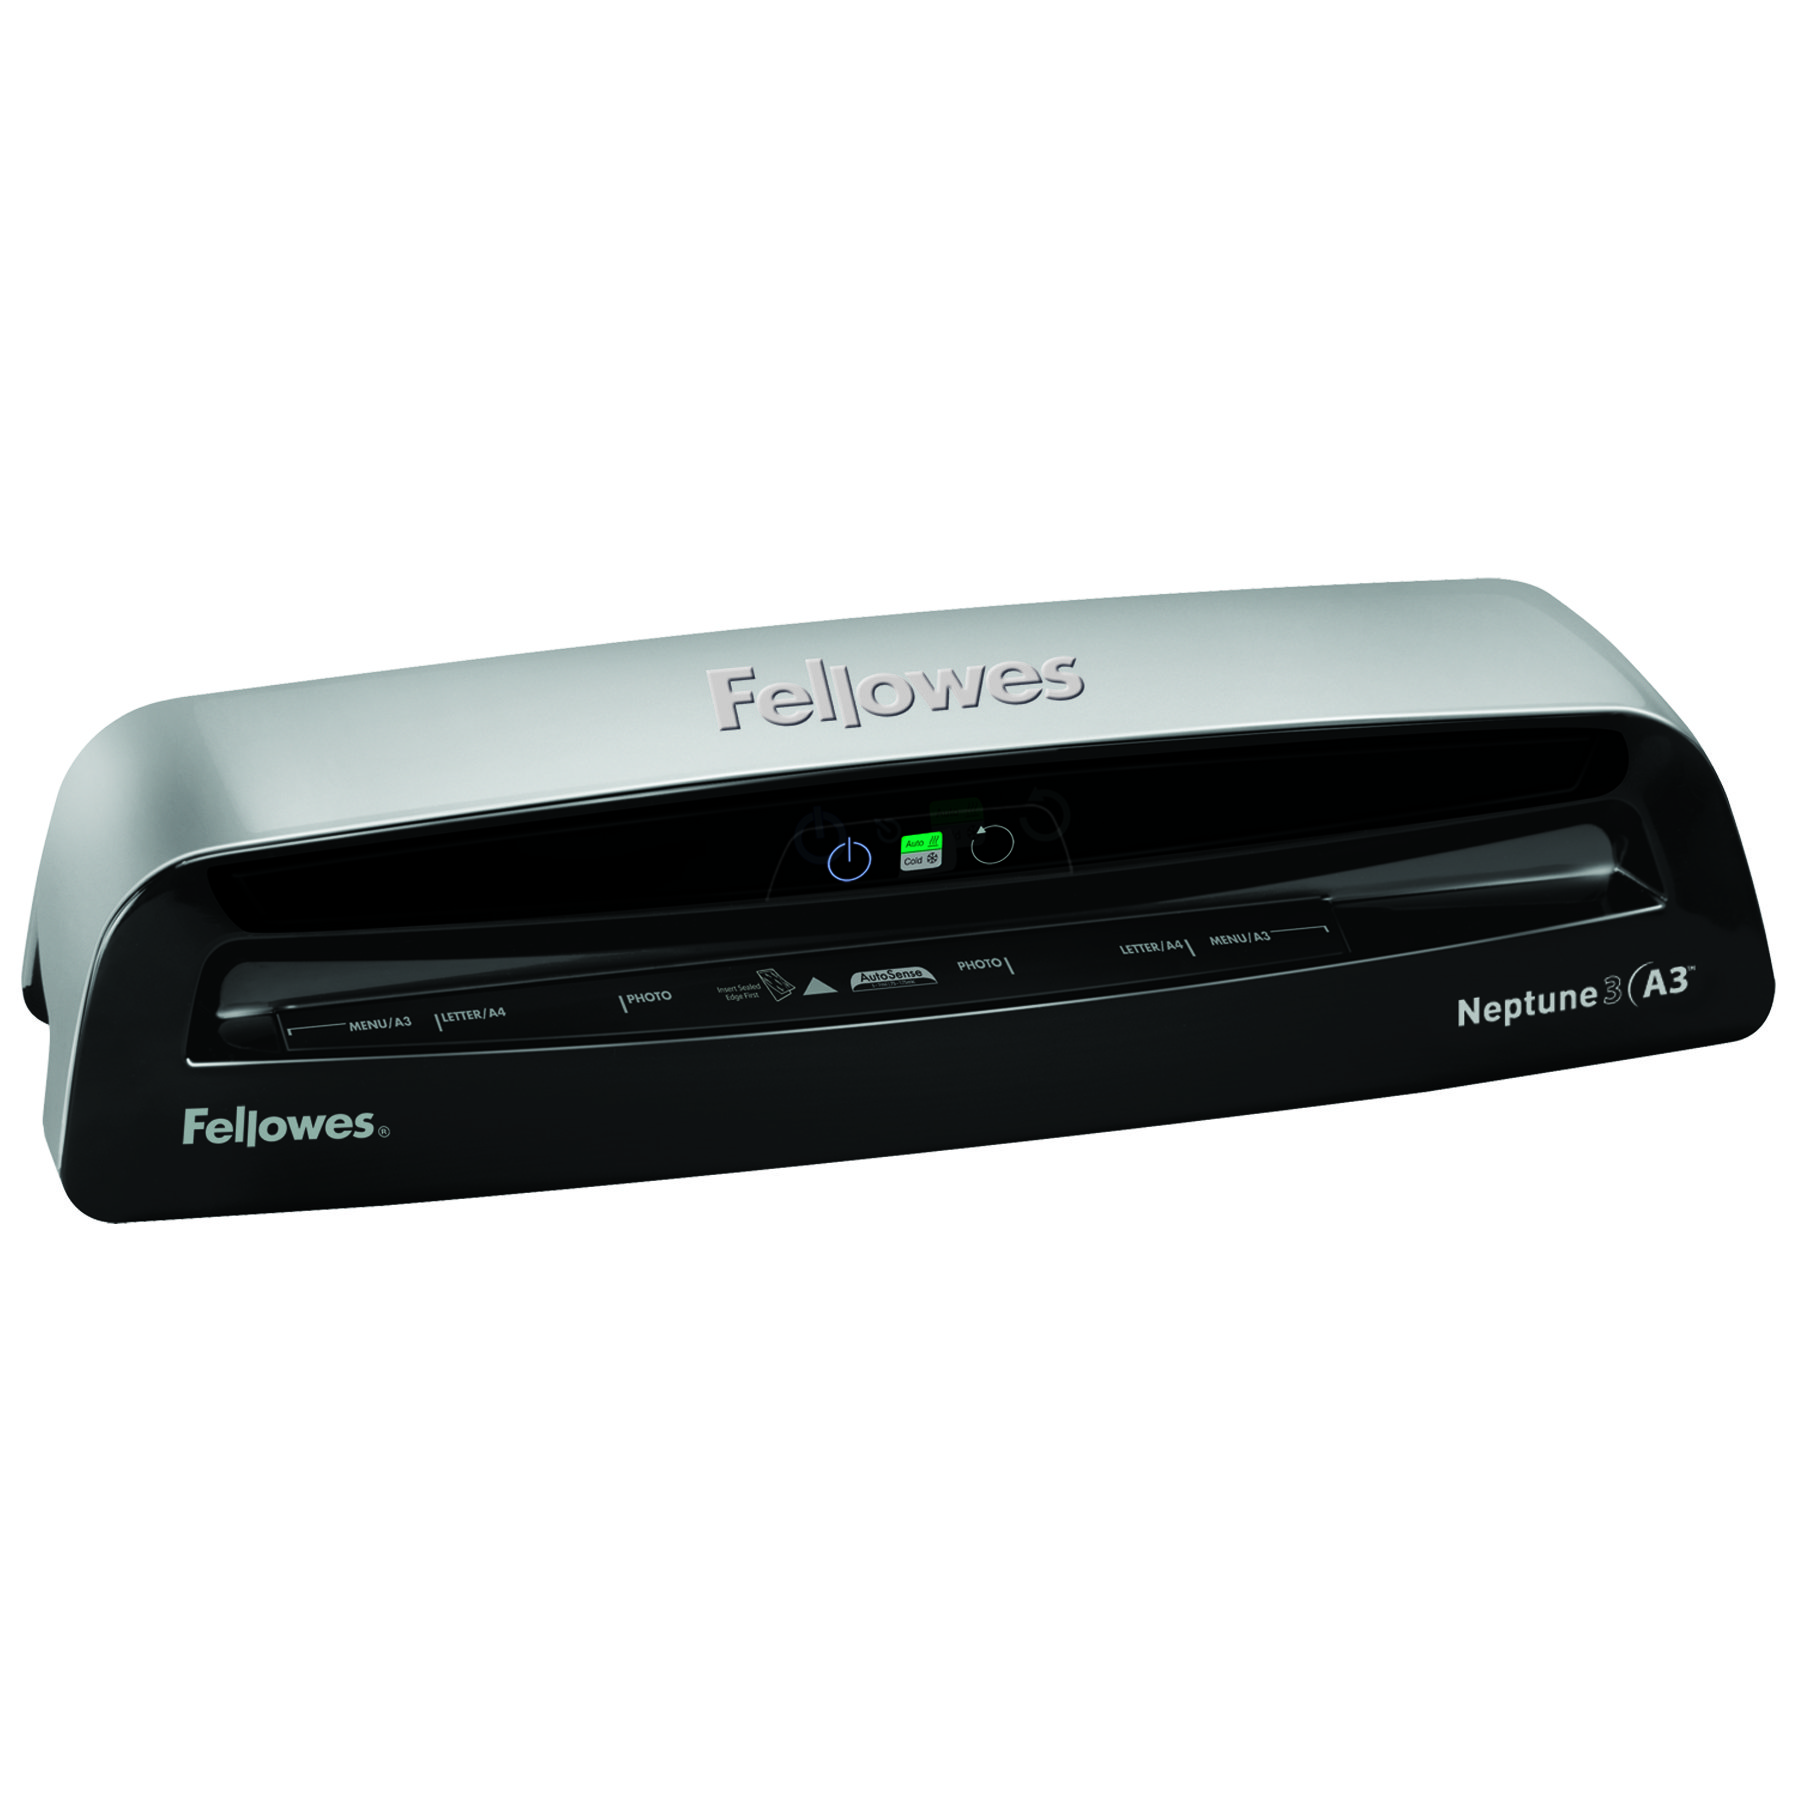 Laminating Machines Fellowes Neptune 3 A3 Laminator